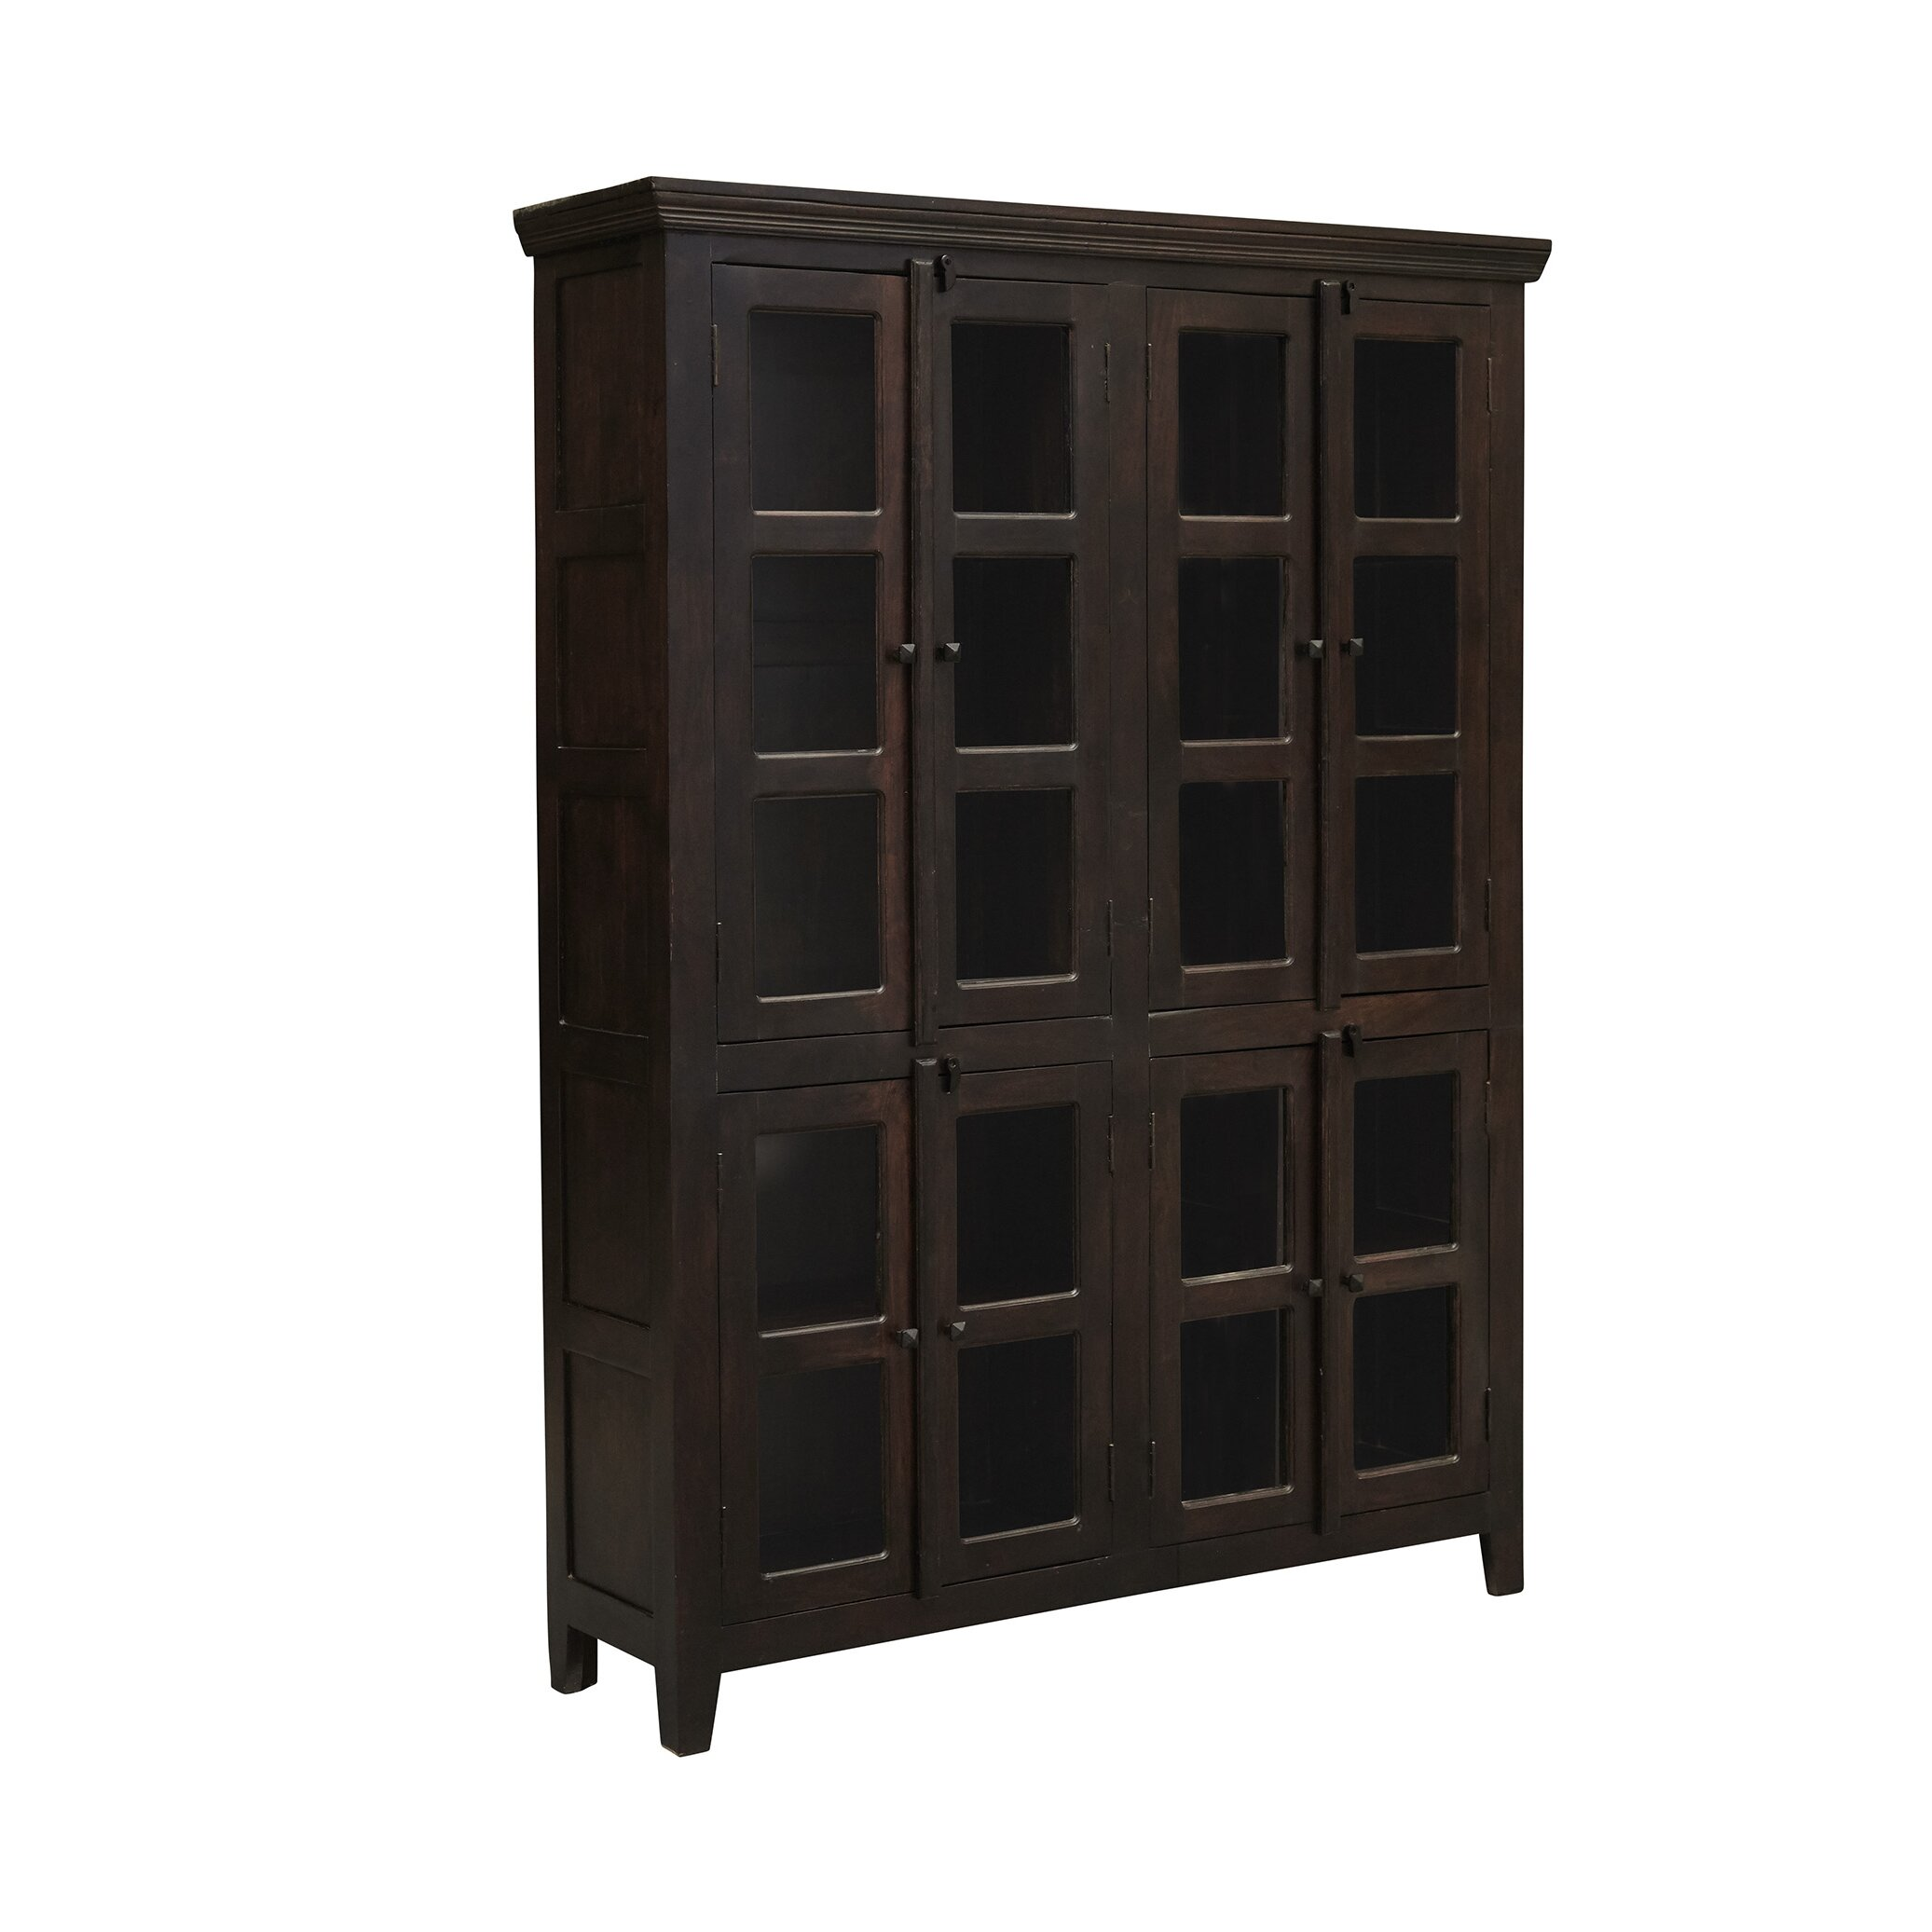 Aishni home furnishings ishu display stand for Display home furniture